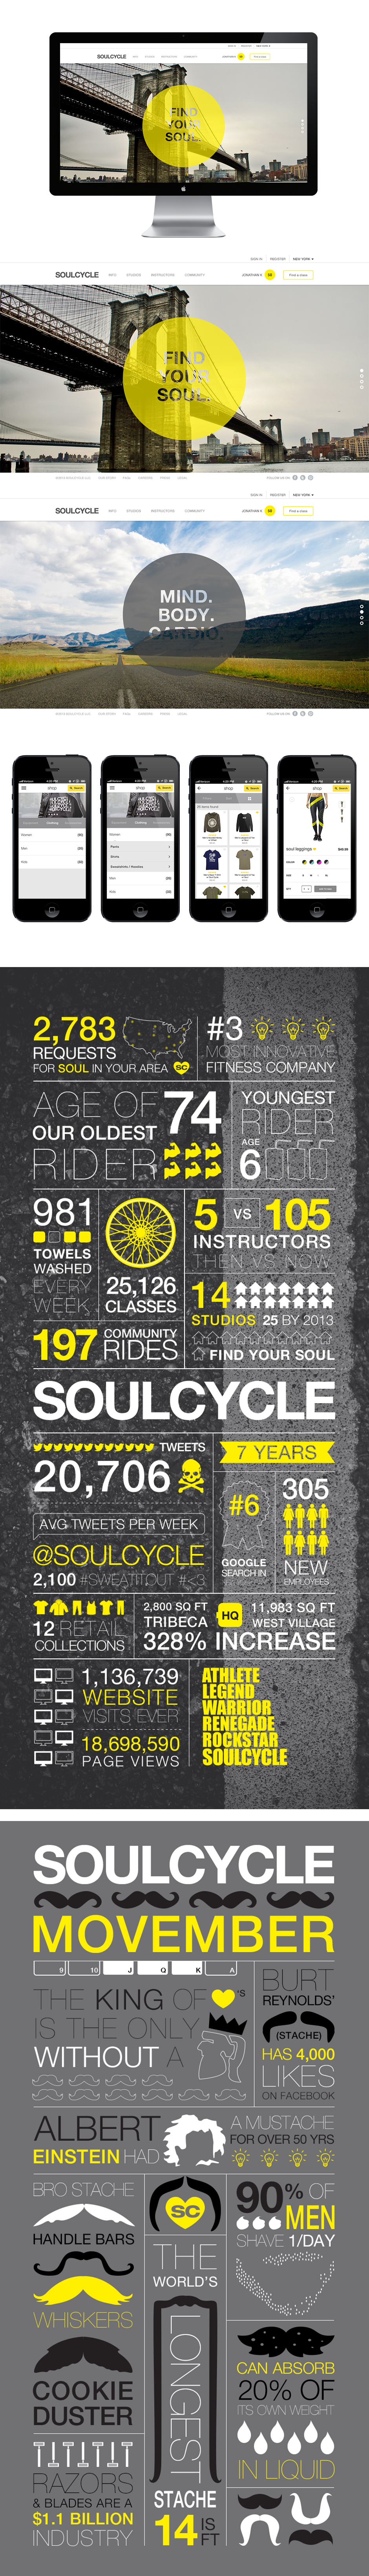 soulcycle2.png